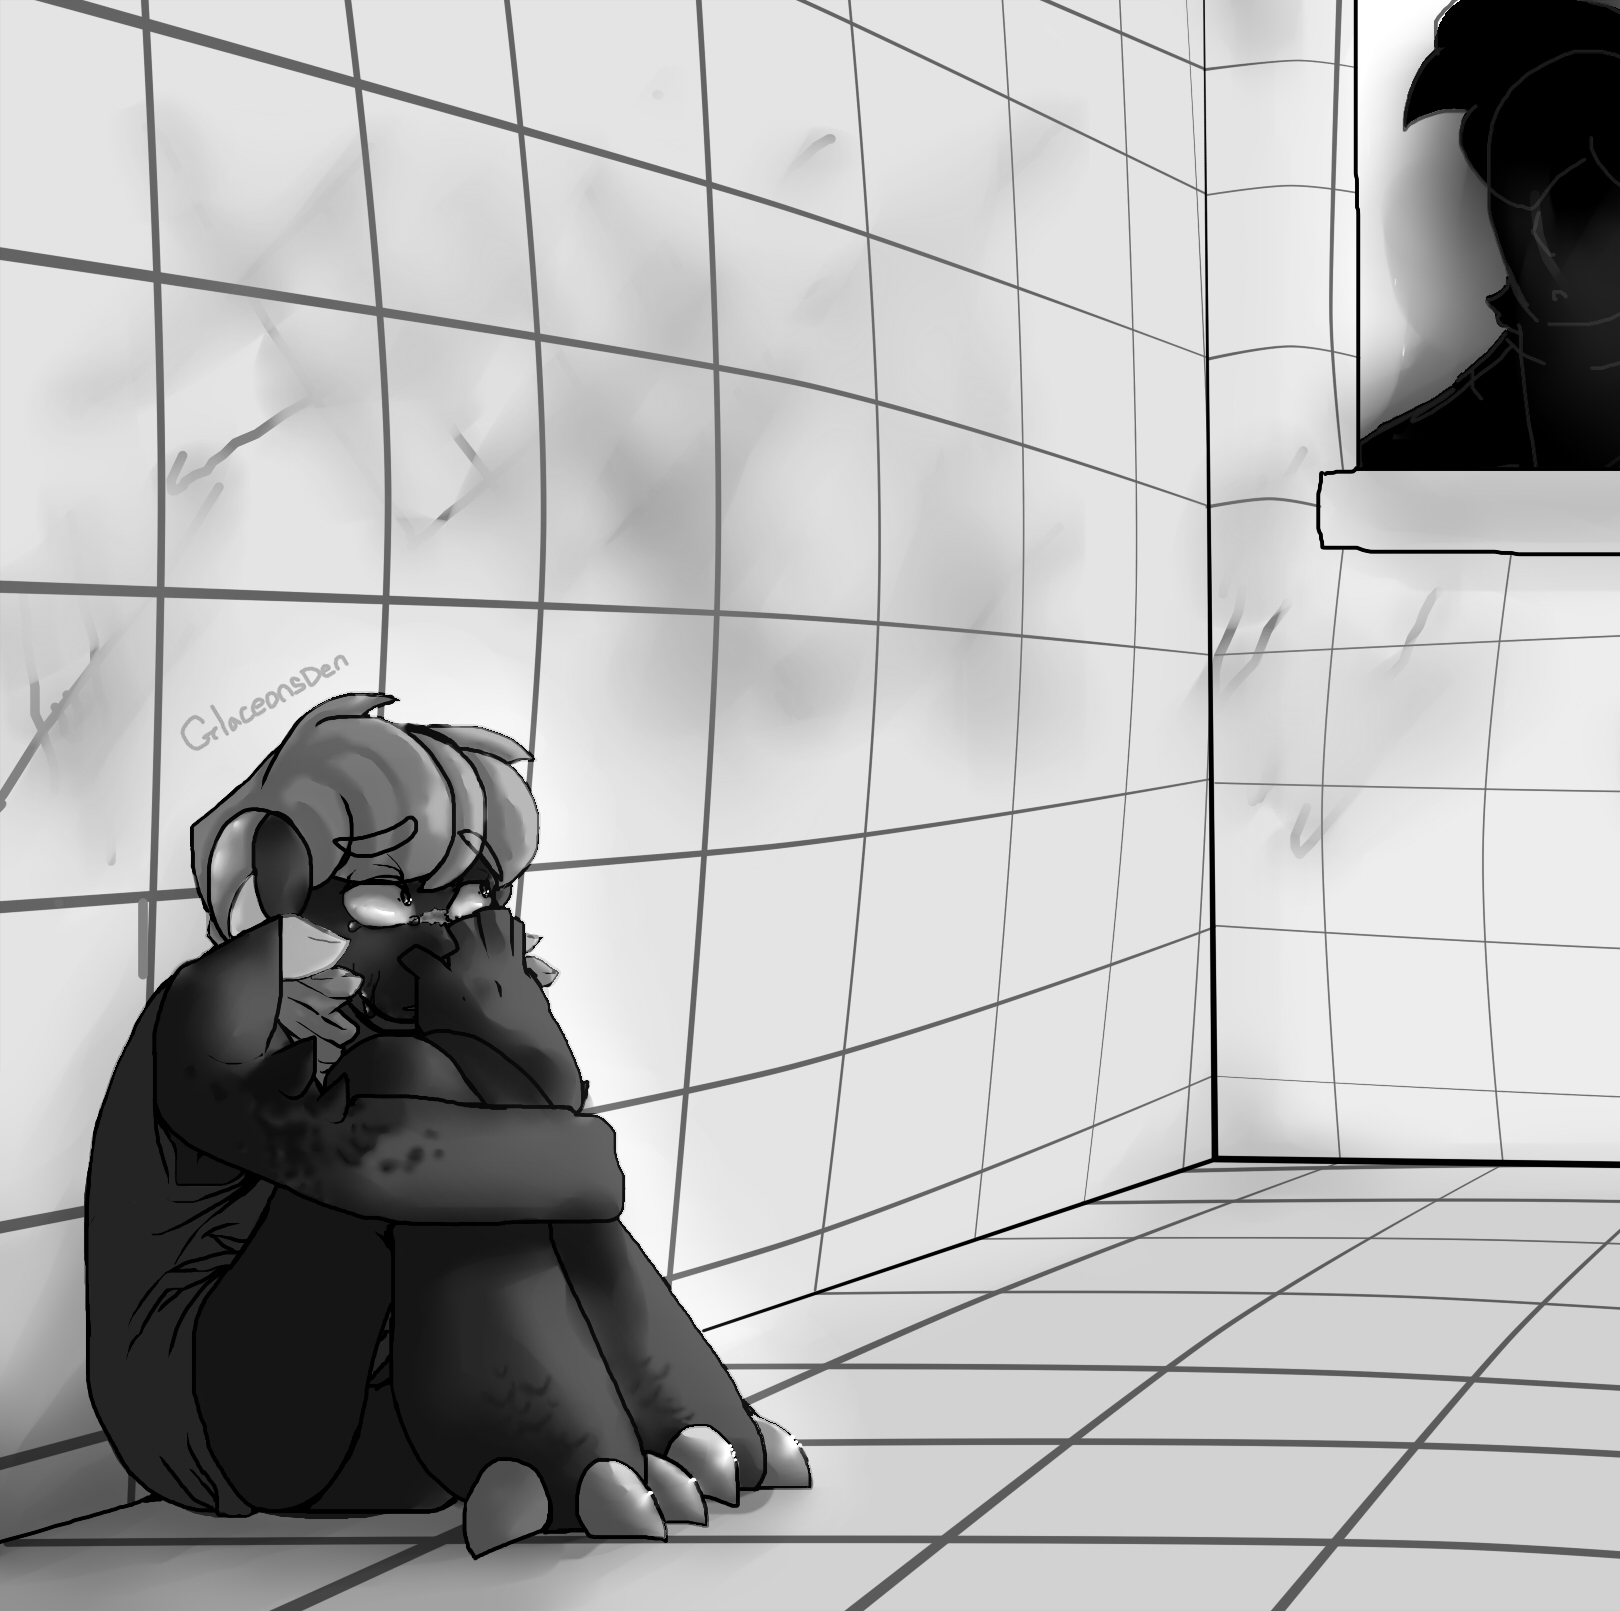 Being Trapped Without Hope is Frightening